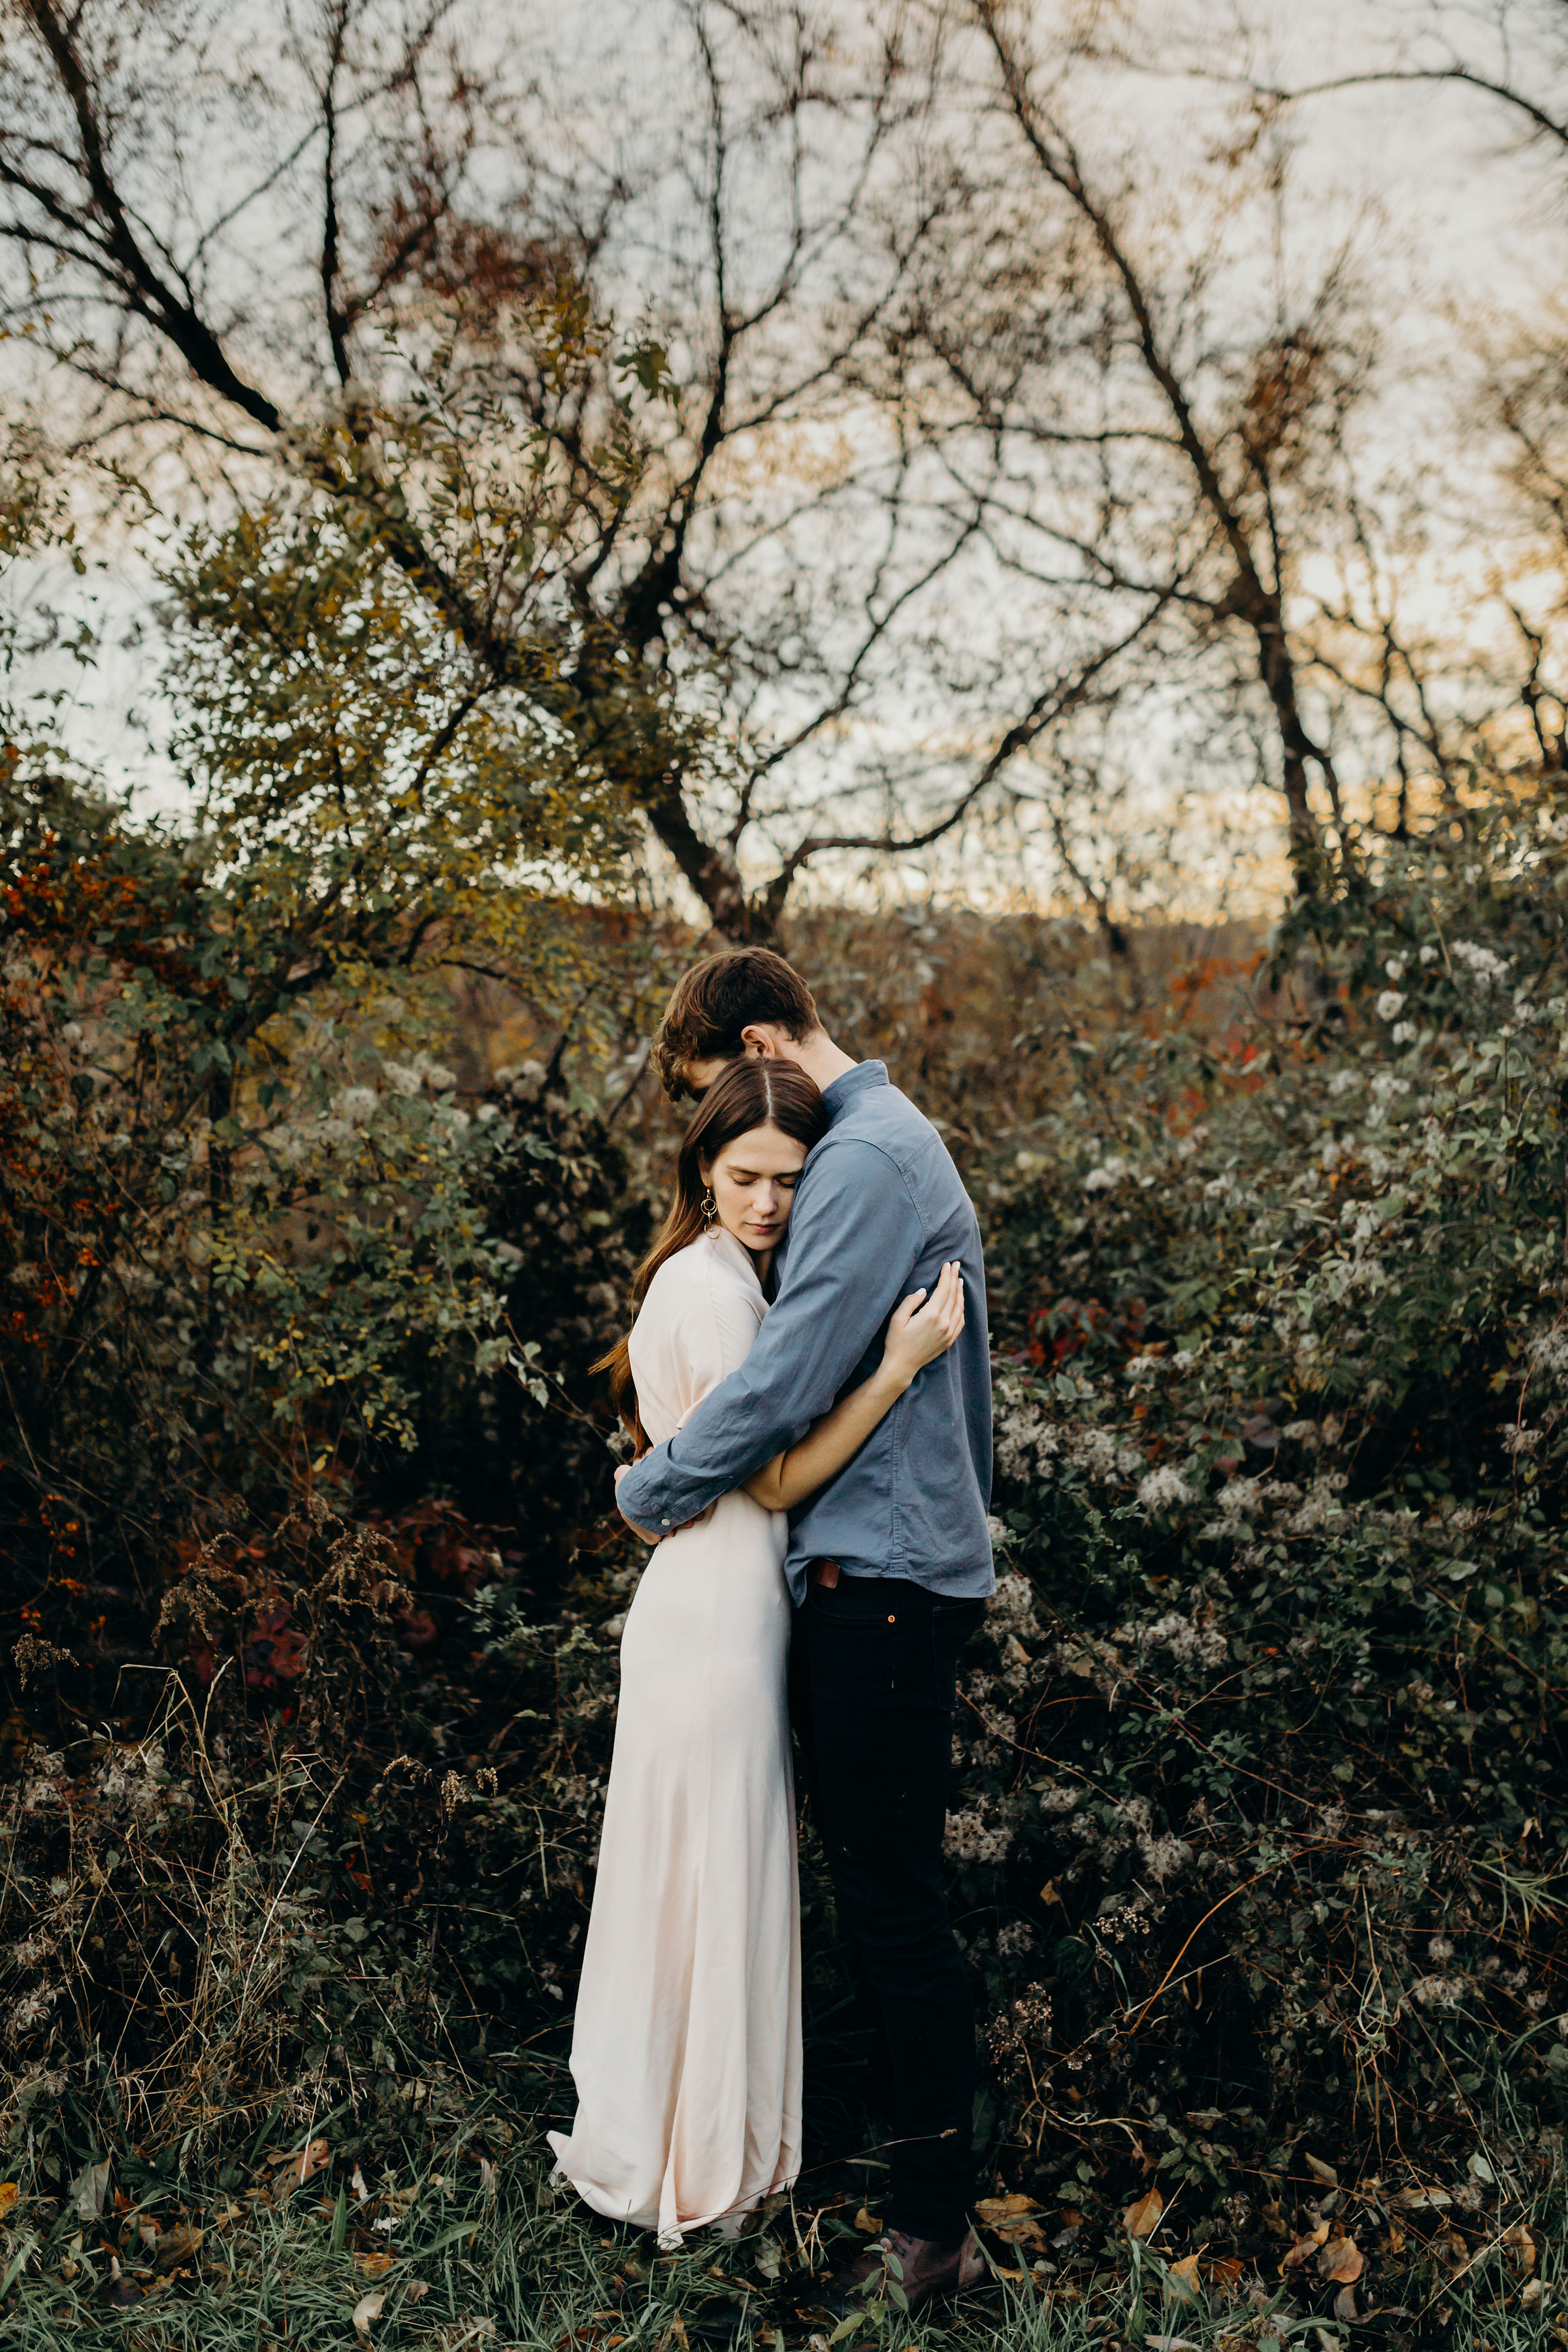 rustic-autumn-fall-north-northern-new-jersey-couple-portrait-elopement-photographer-165.jpg